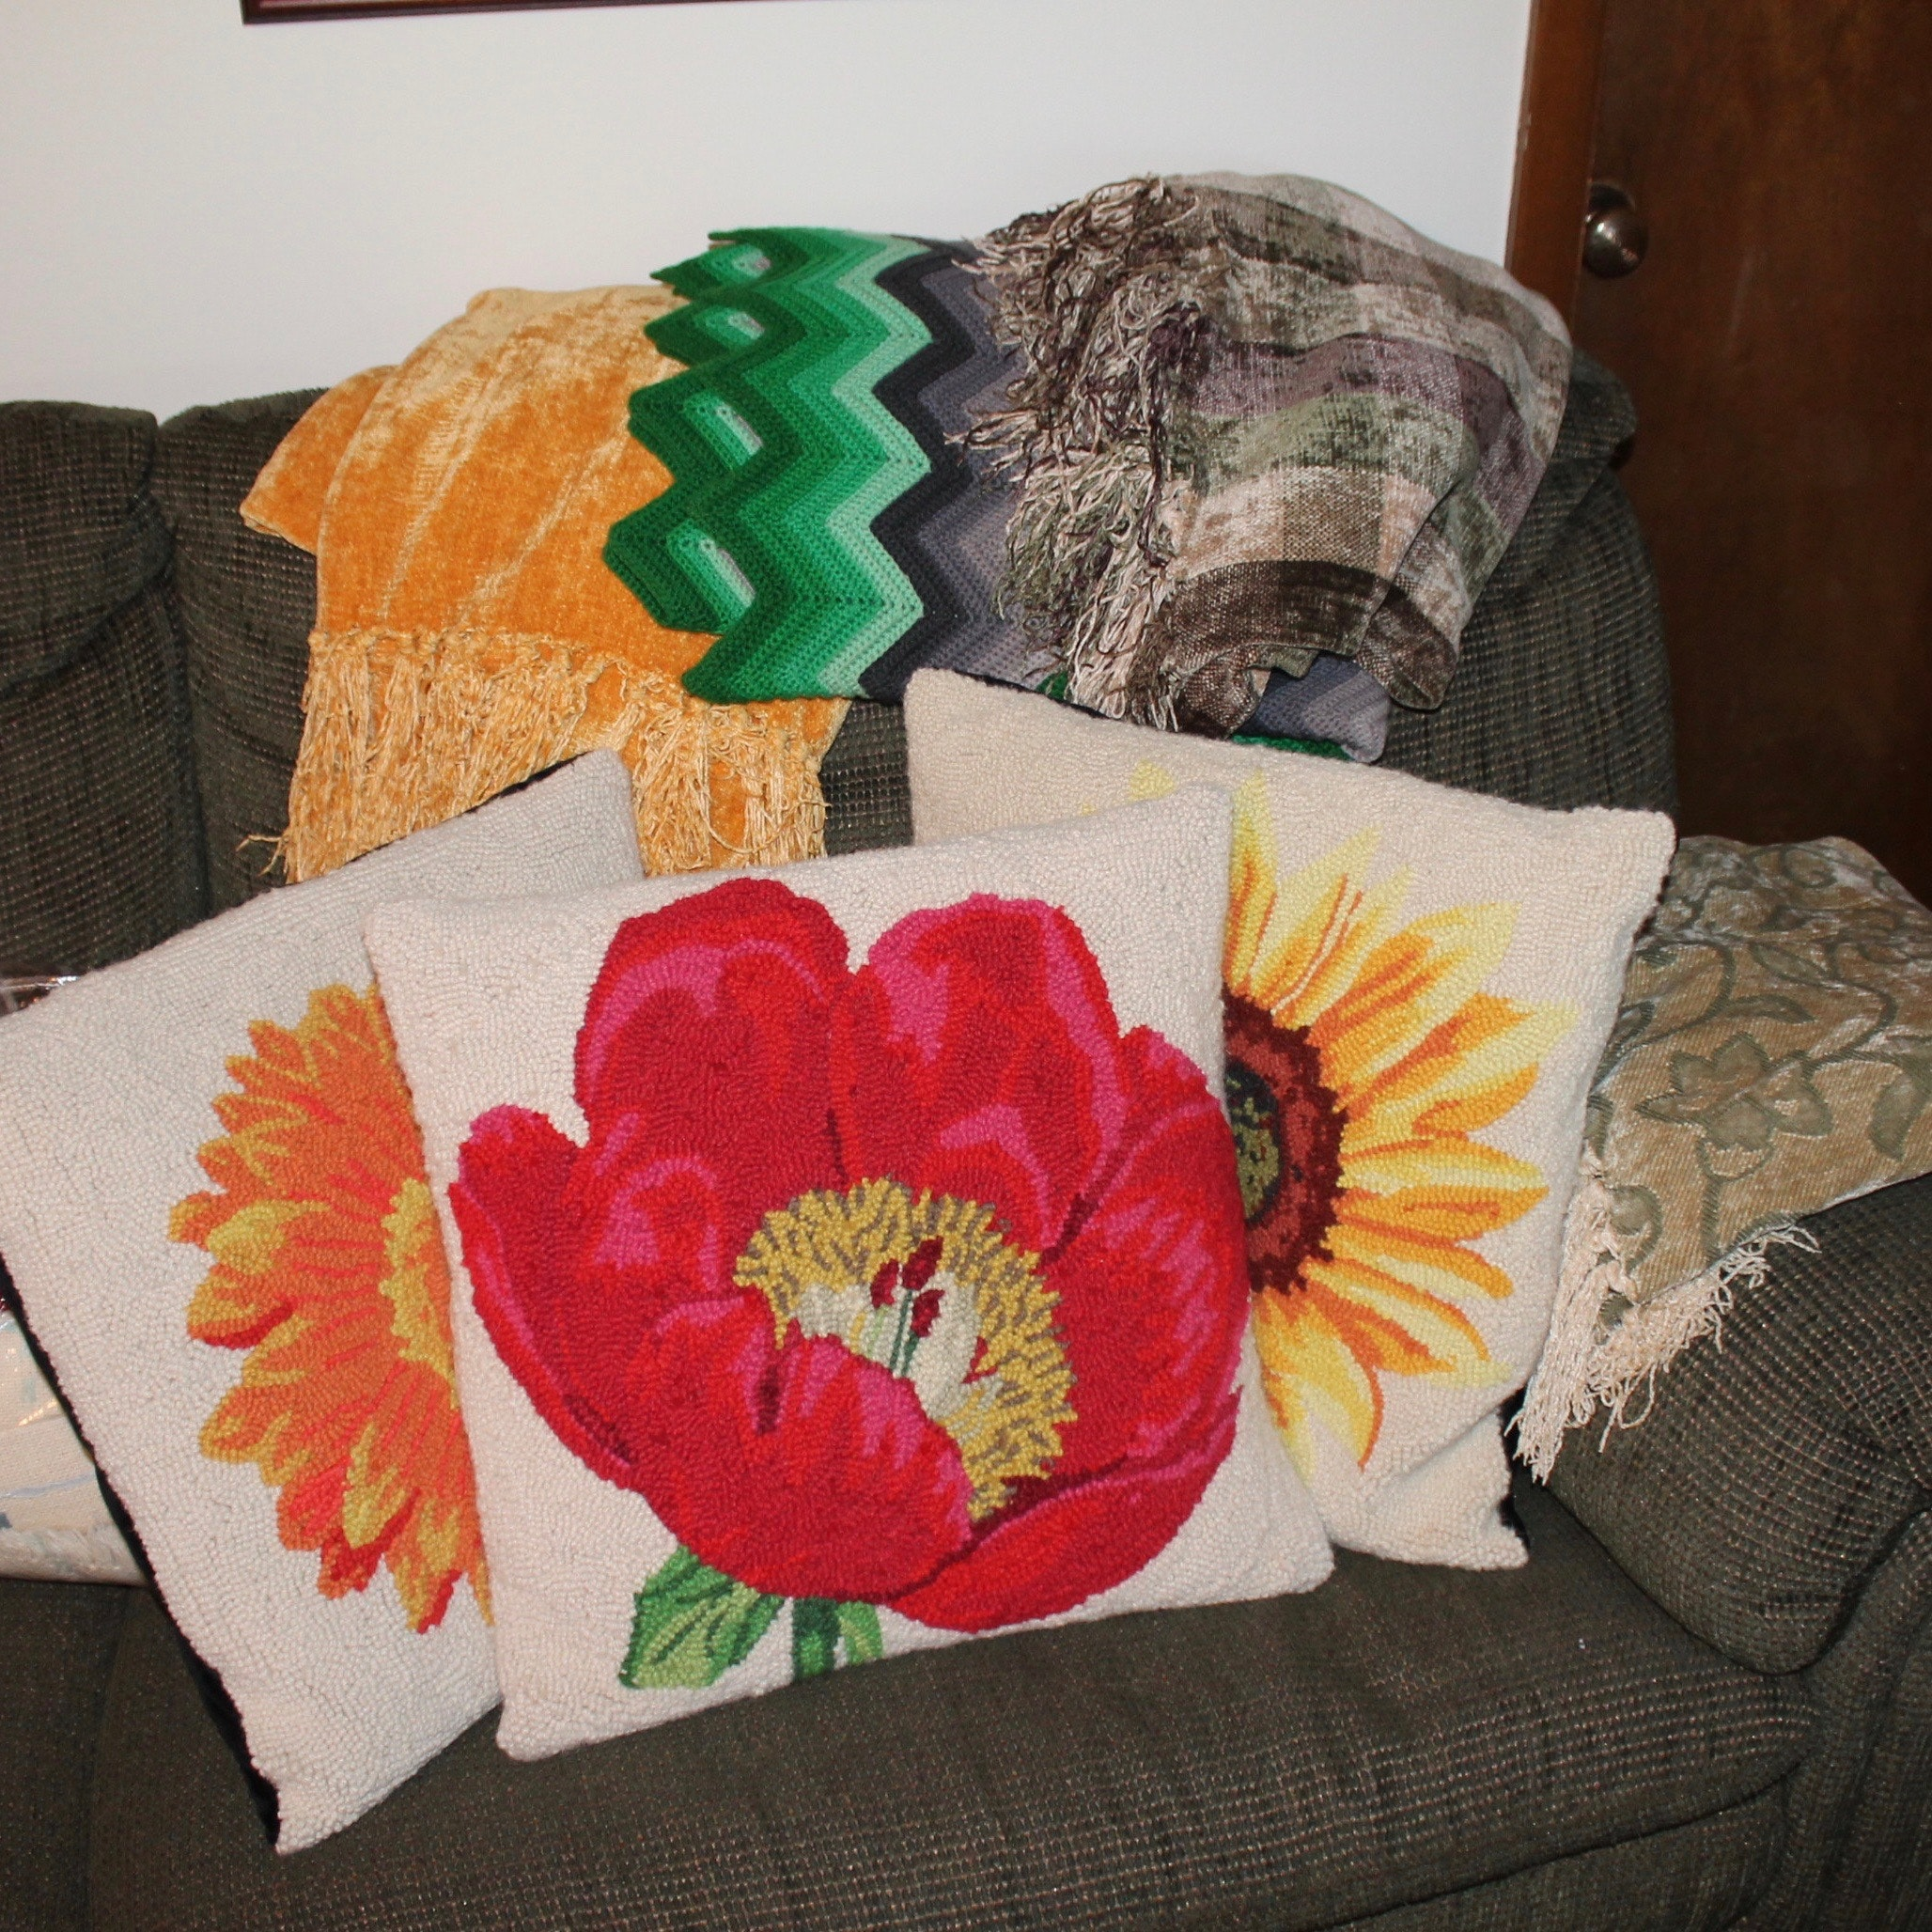 Decorative Throw Pillows and Afghans